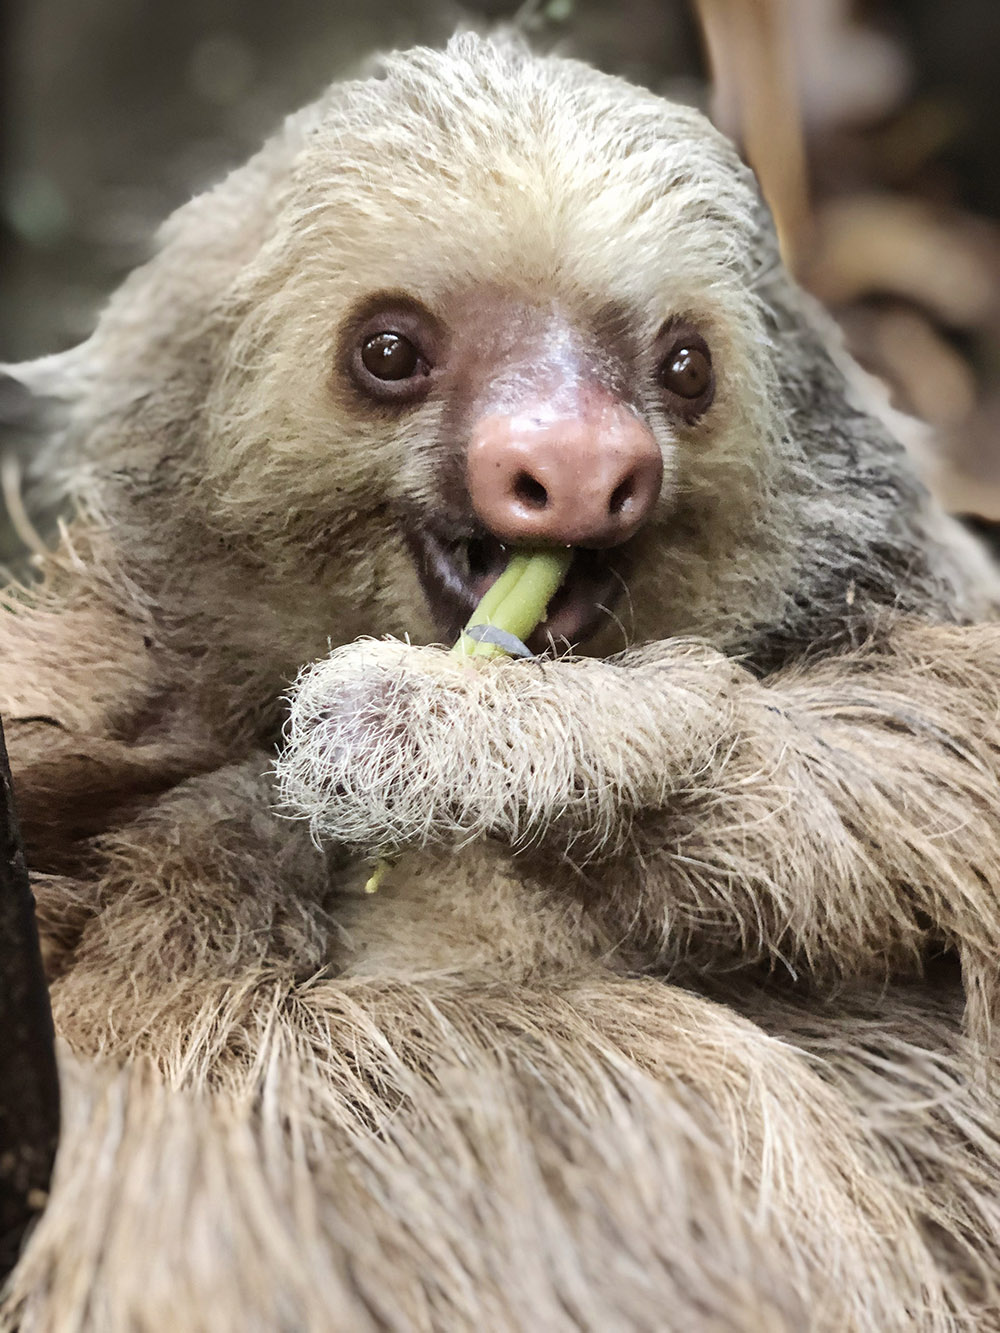 A Sloth chews on a green bean